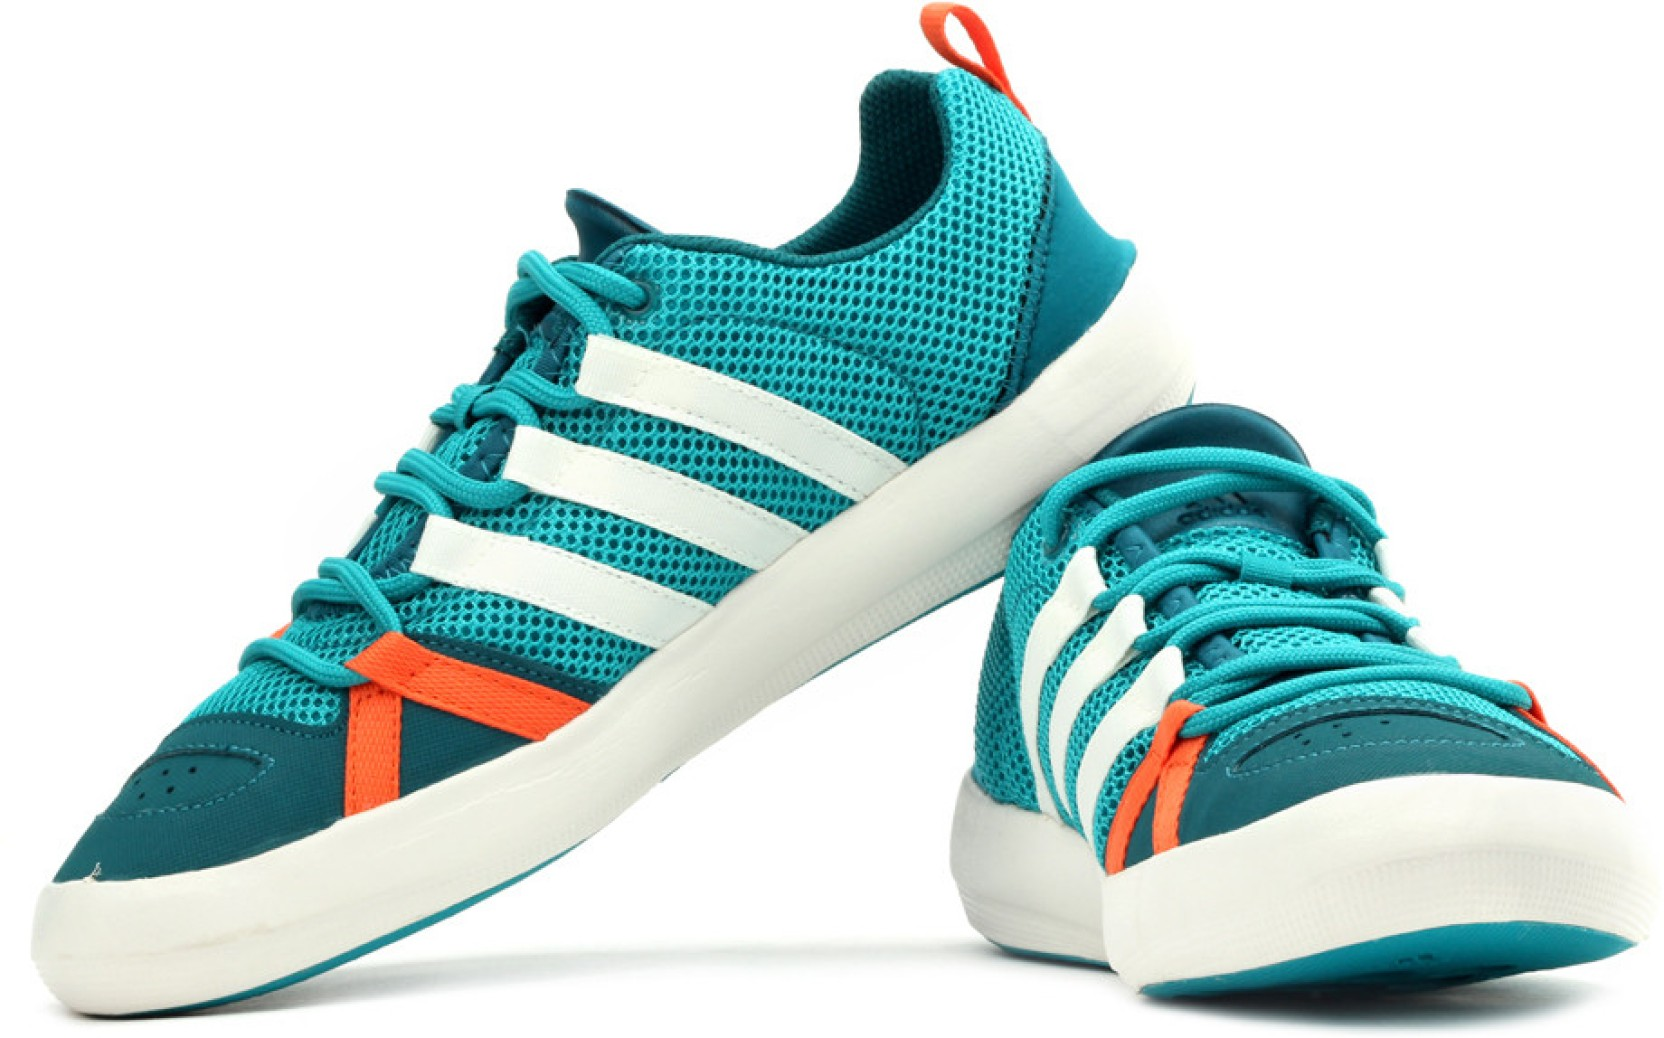 Adidas Boat Lace Shoes Online